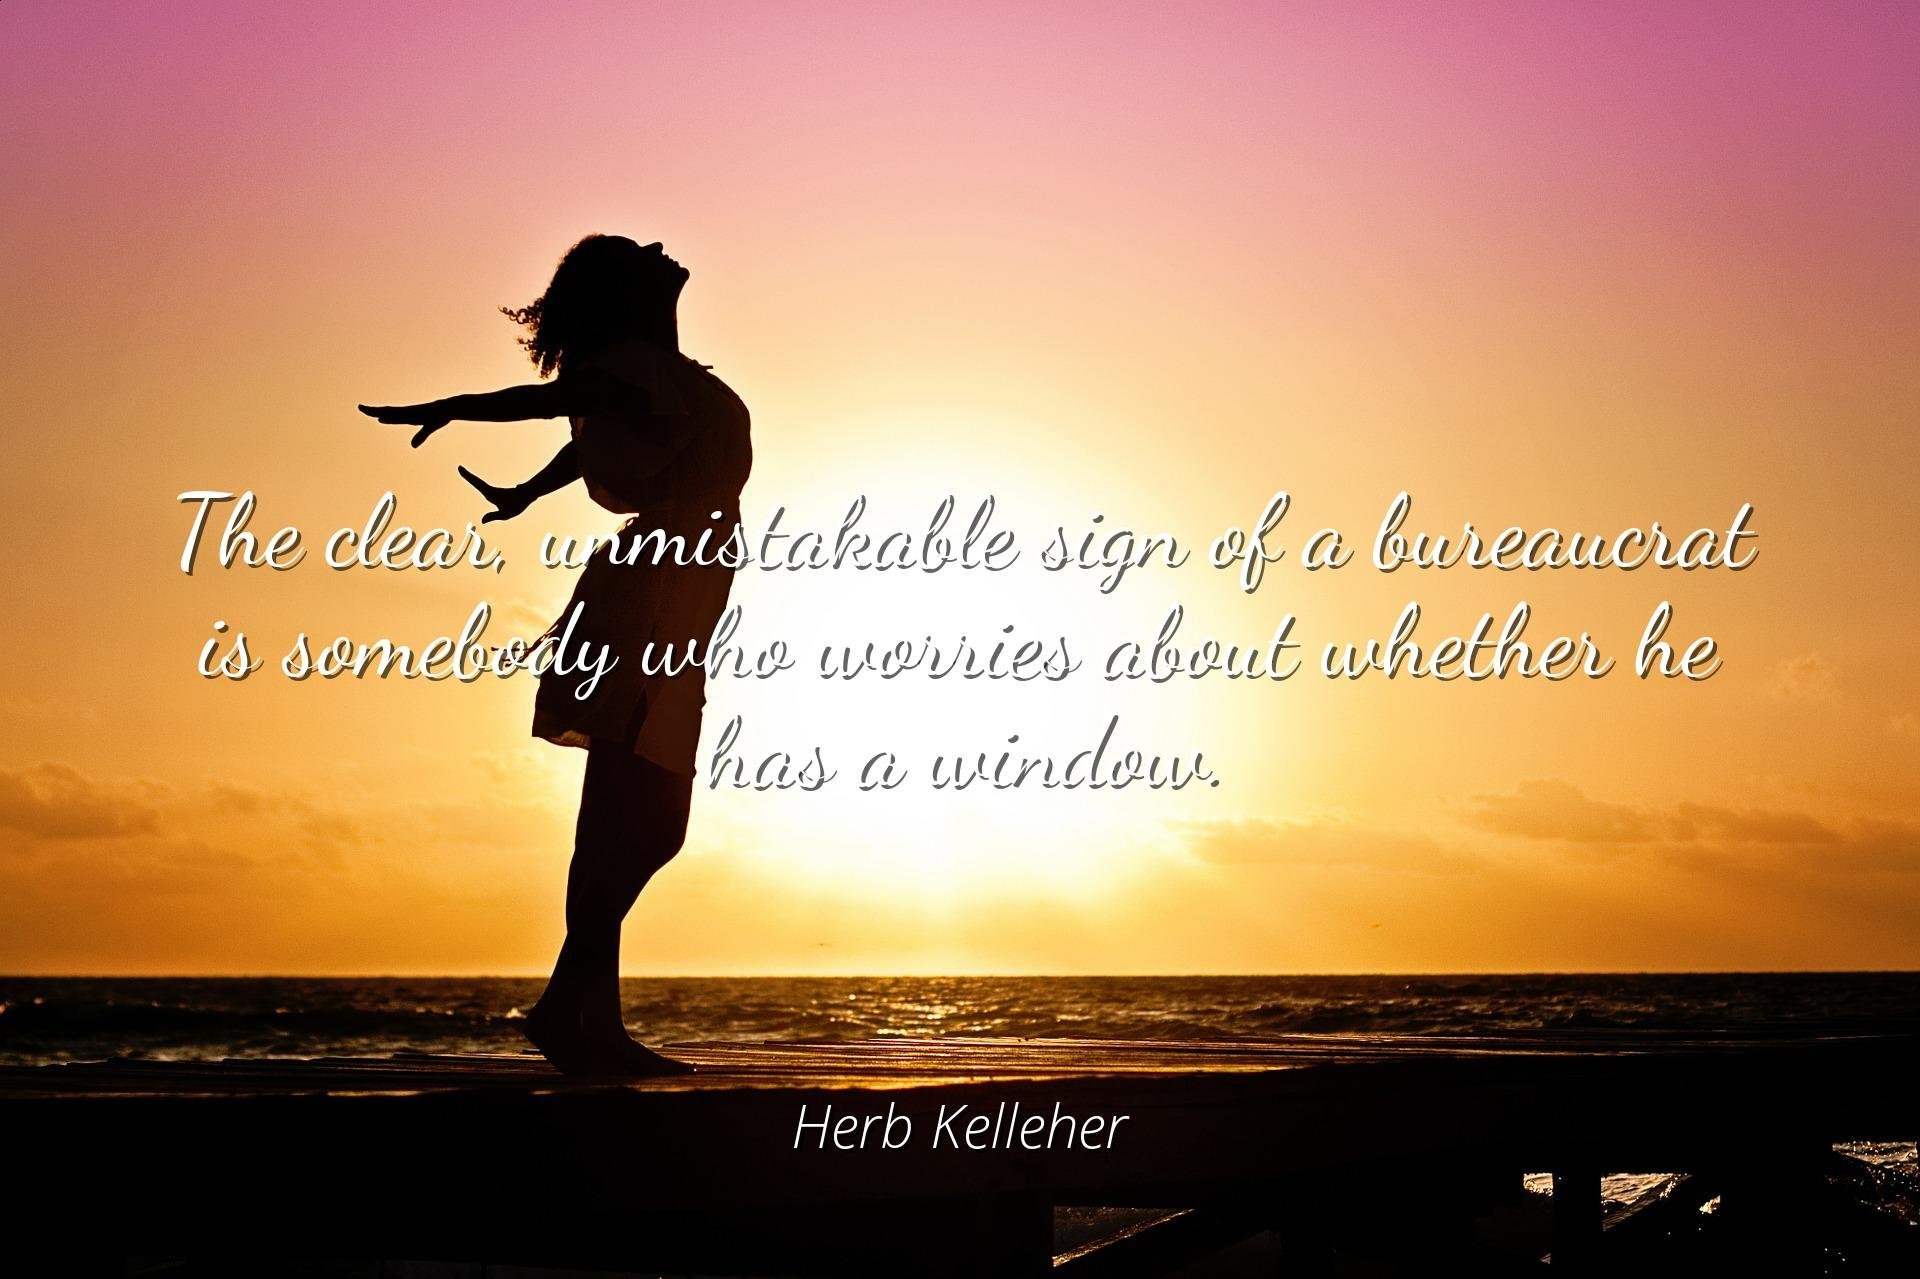 Herb Kelleher - Famous Quotes Laminated Poster Print 24x20 - The Clear, unmistakable Sign of a Bureaucrat is Somebody who Worries About Whether he has a Window.